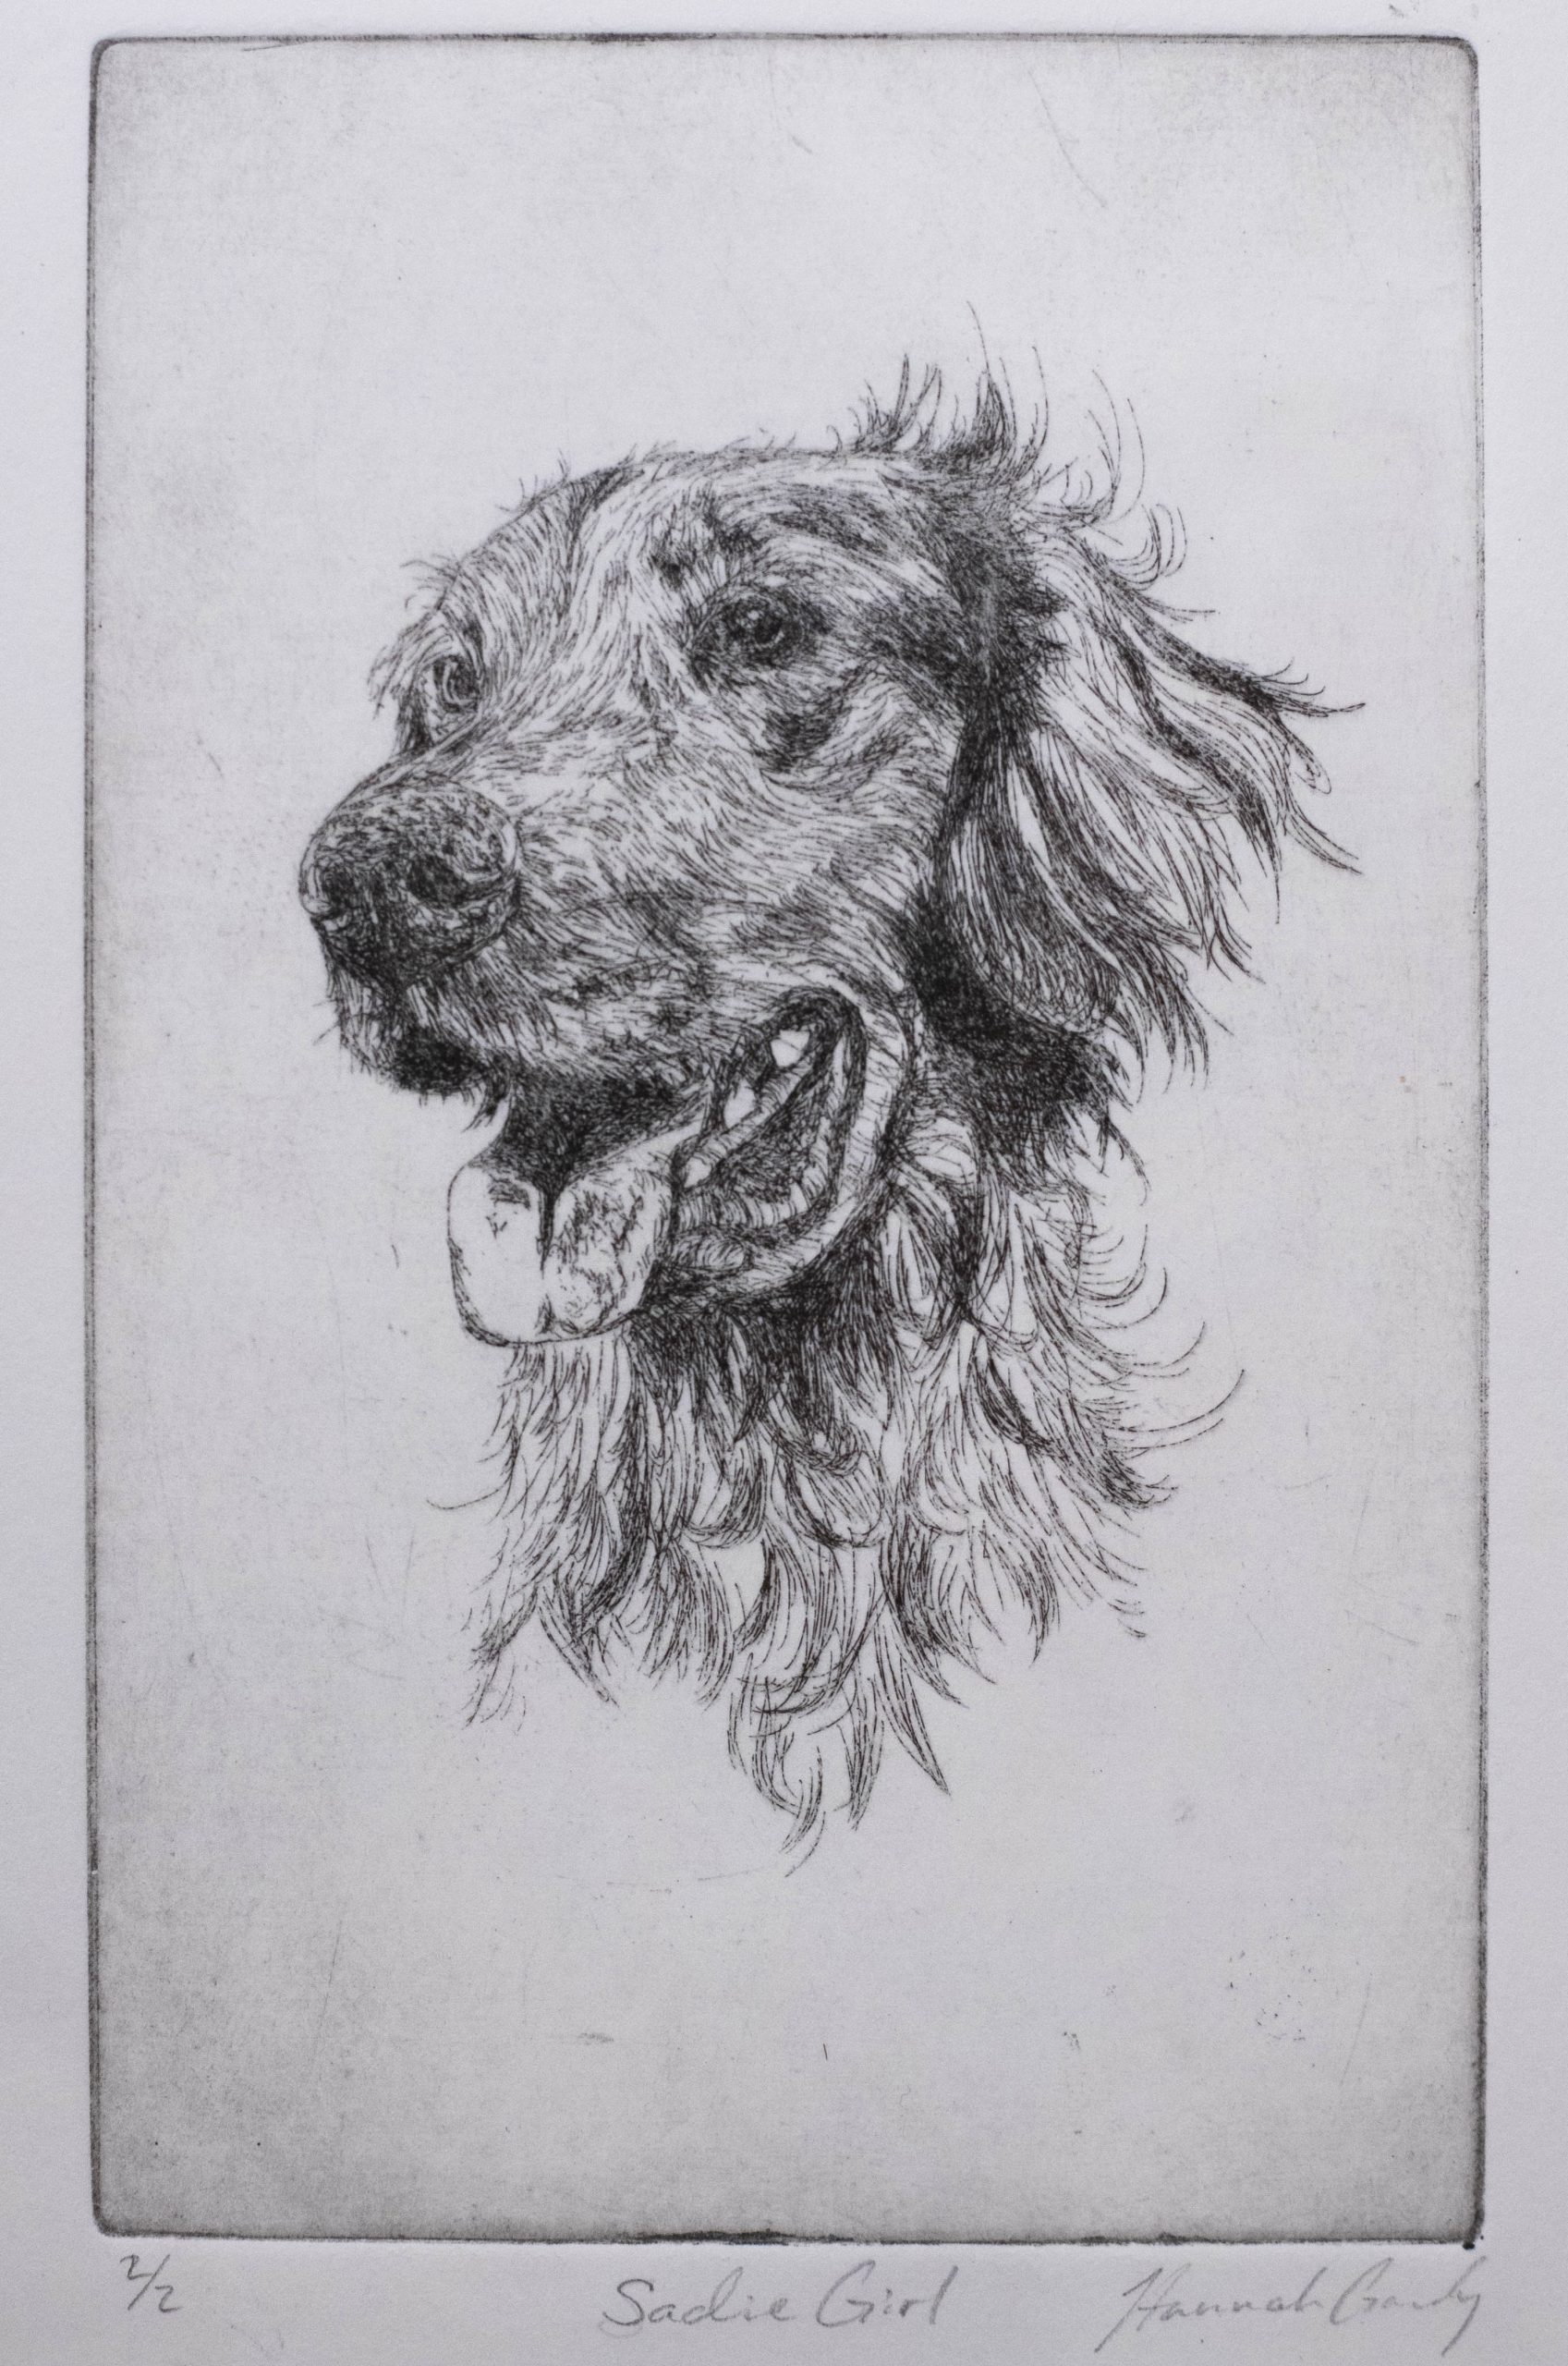 Hannah Gandy of Valdosta, Georgia Sadie Girl (Intaglio) Honorable Mention